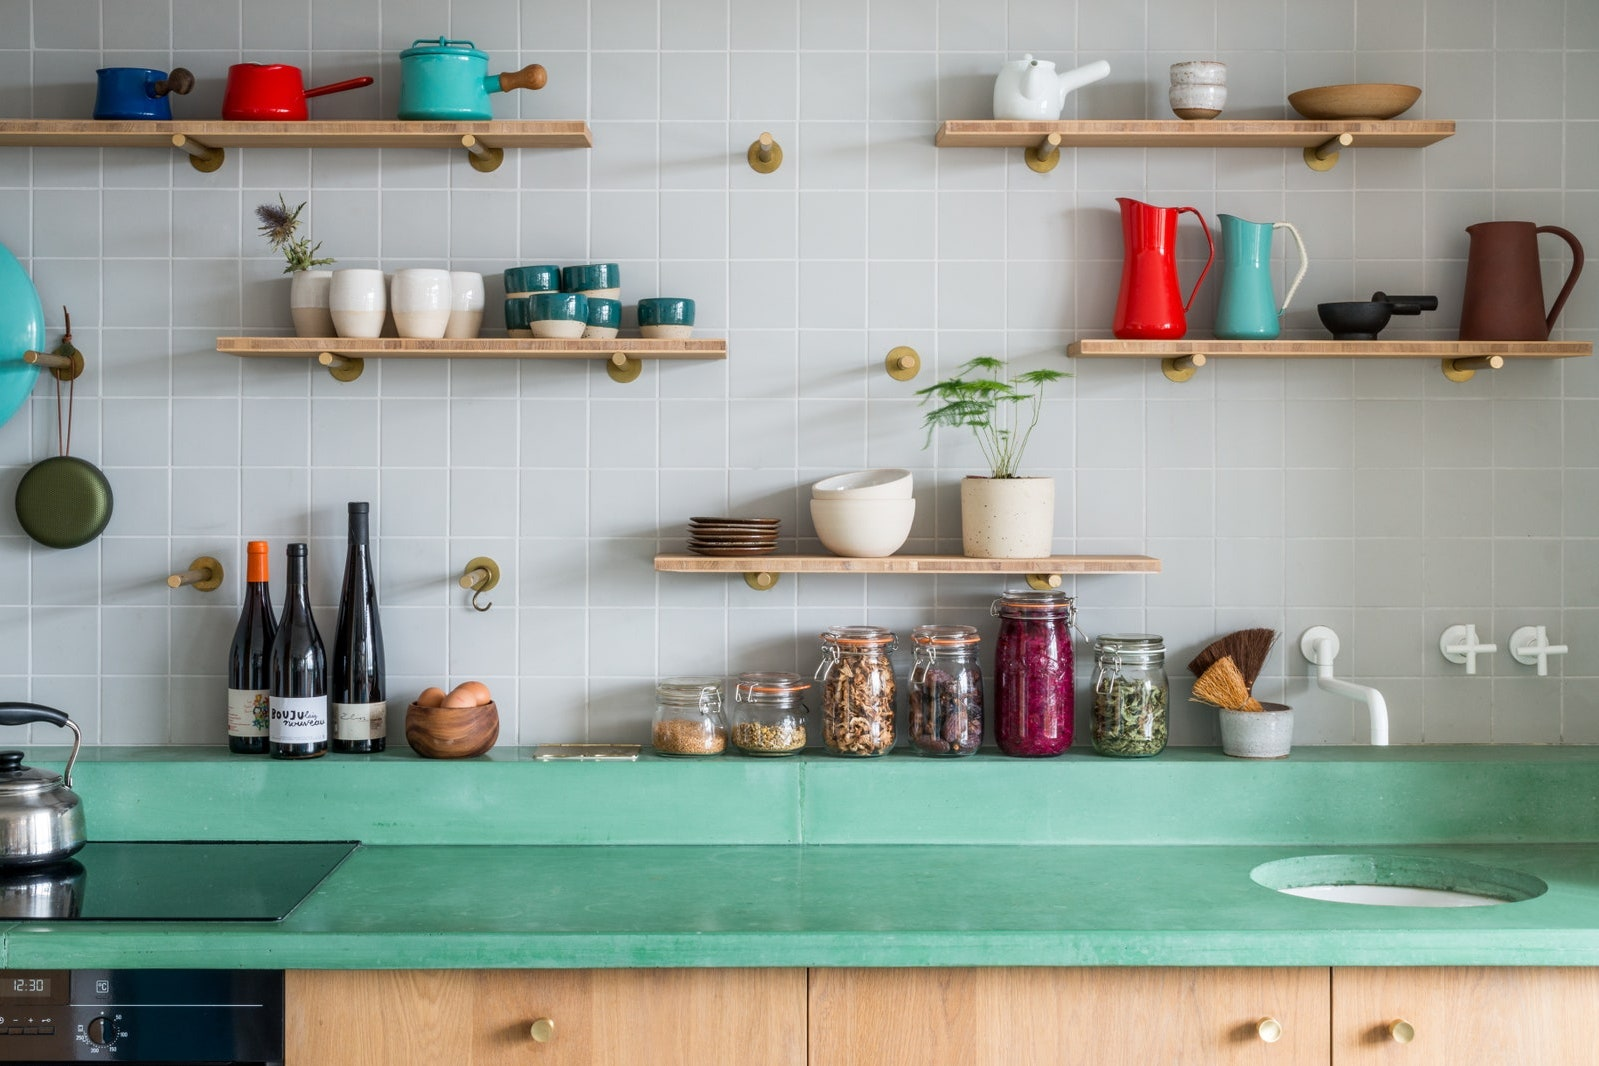 shelving and storage space for kitchen